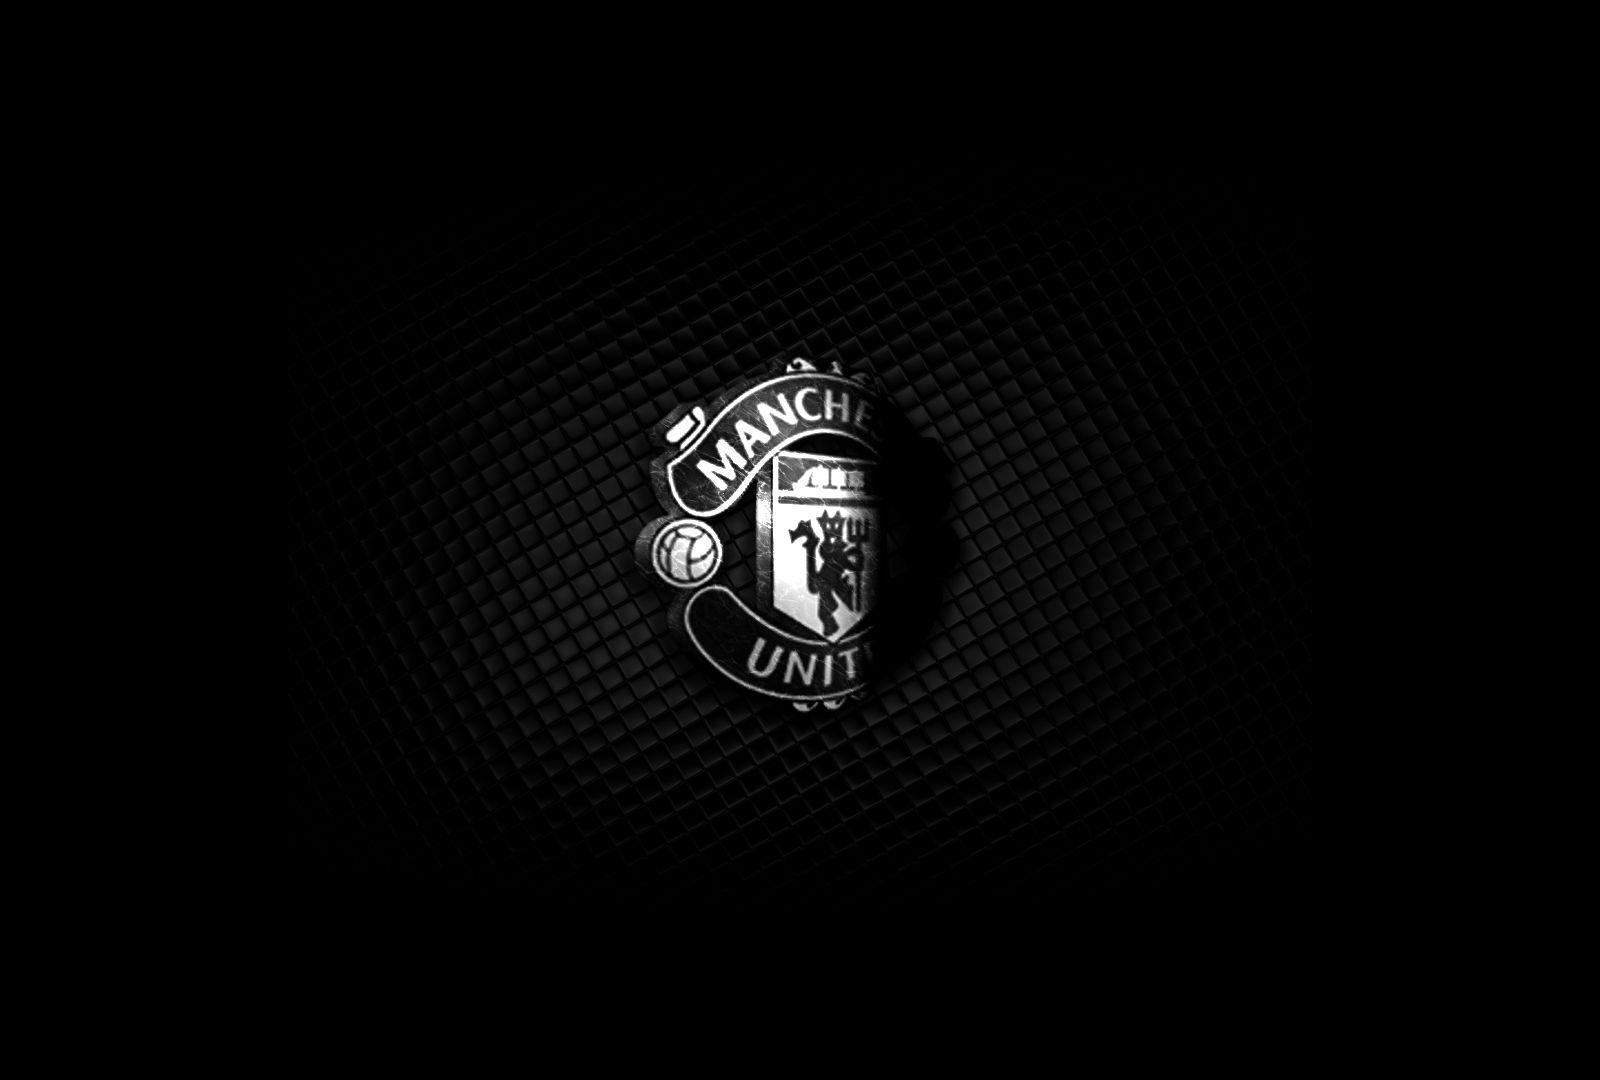 Manchester United Black Hd Wallpapers Wallpaper Cave